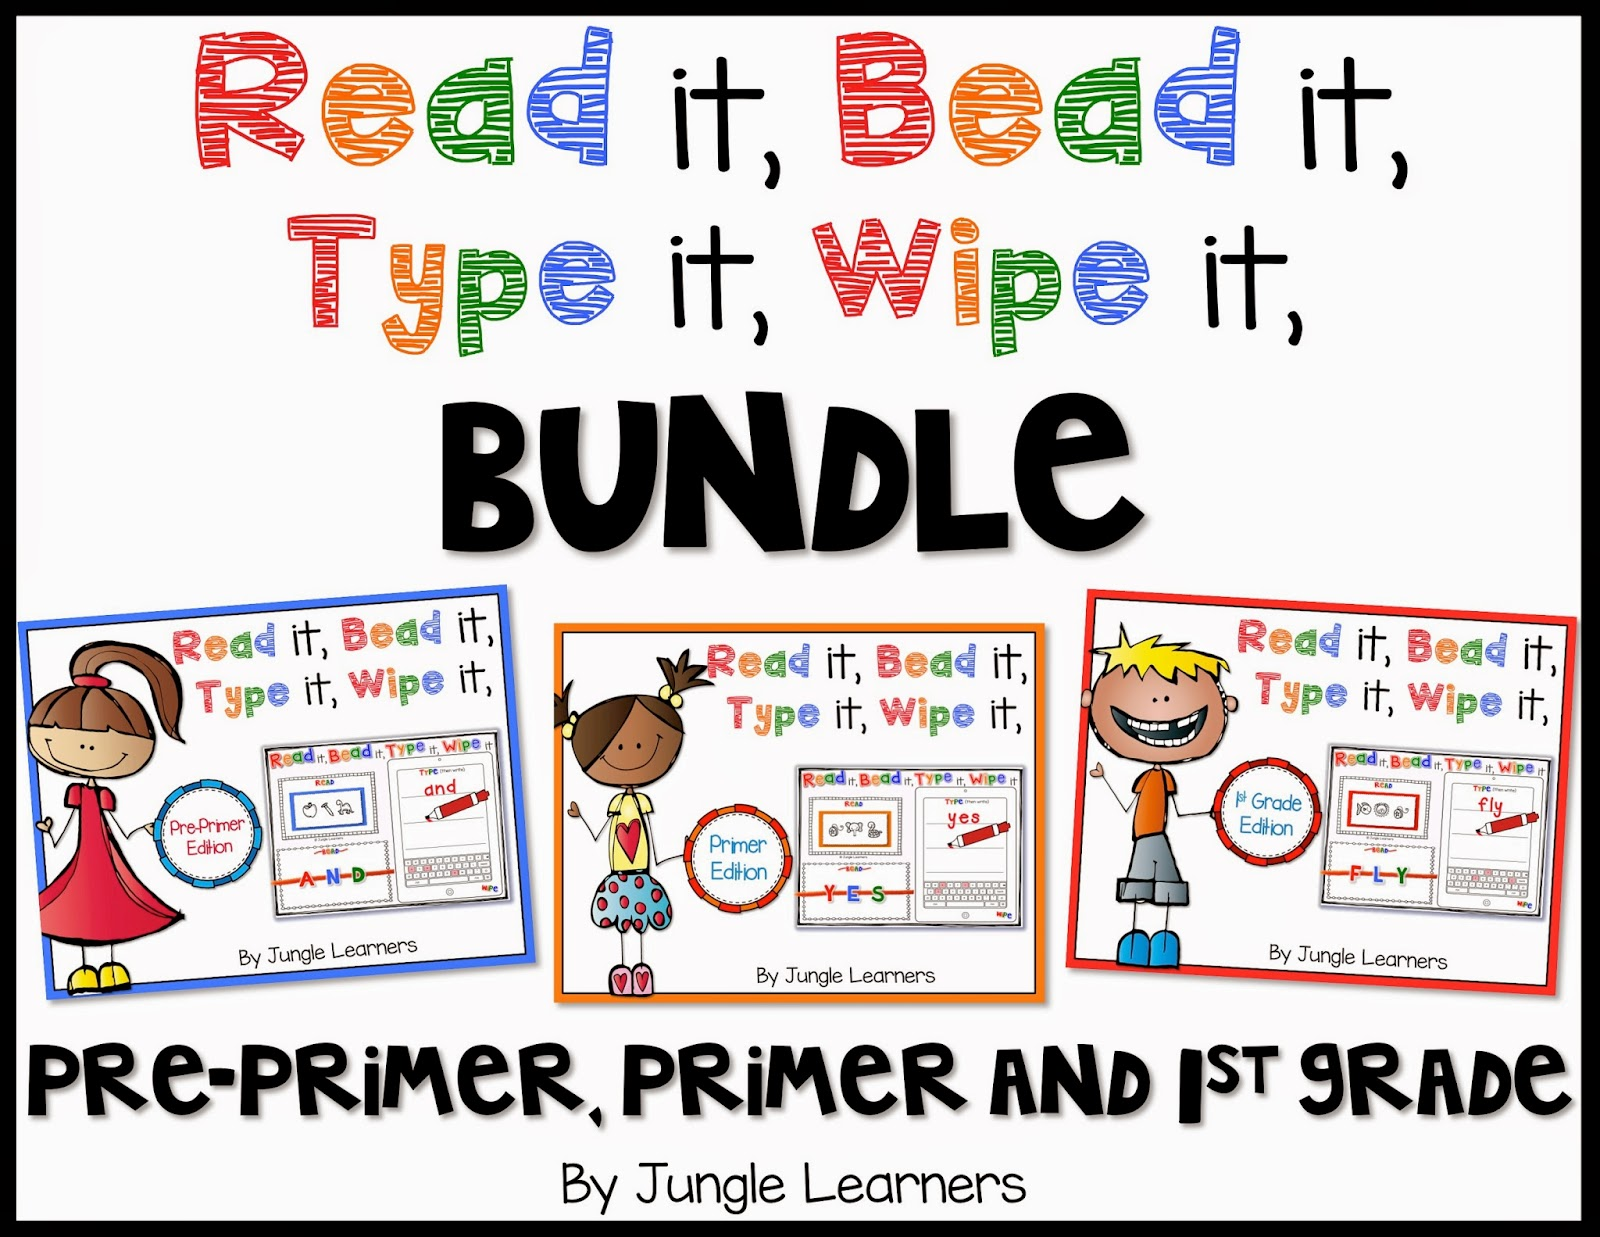 Read it, Bead it, Type it, Wipe it [Beginners Bundle]